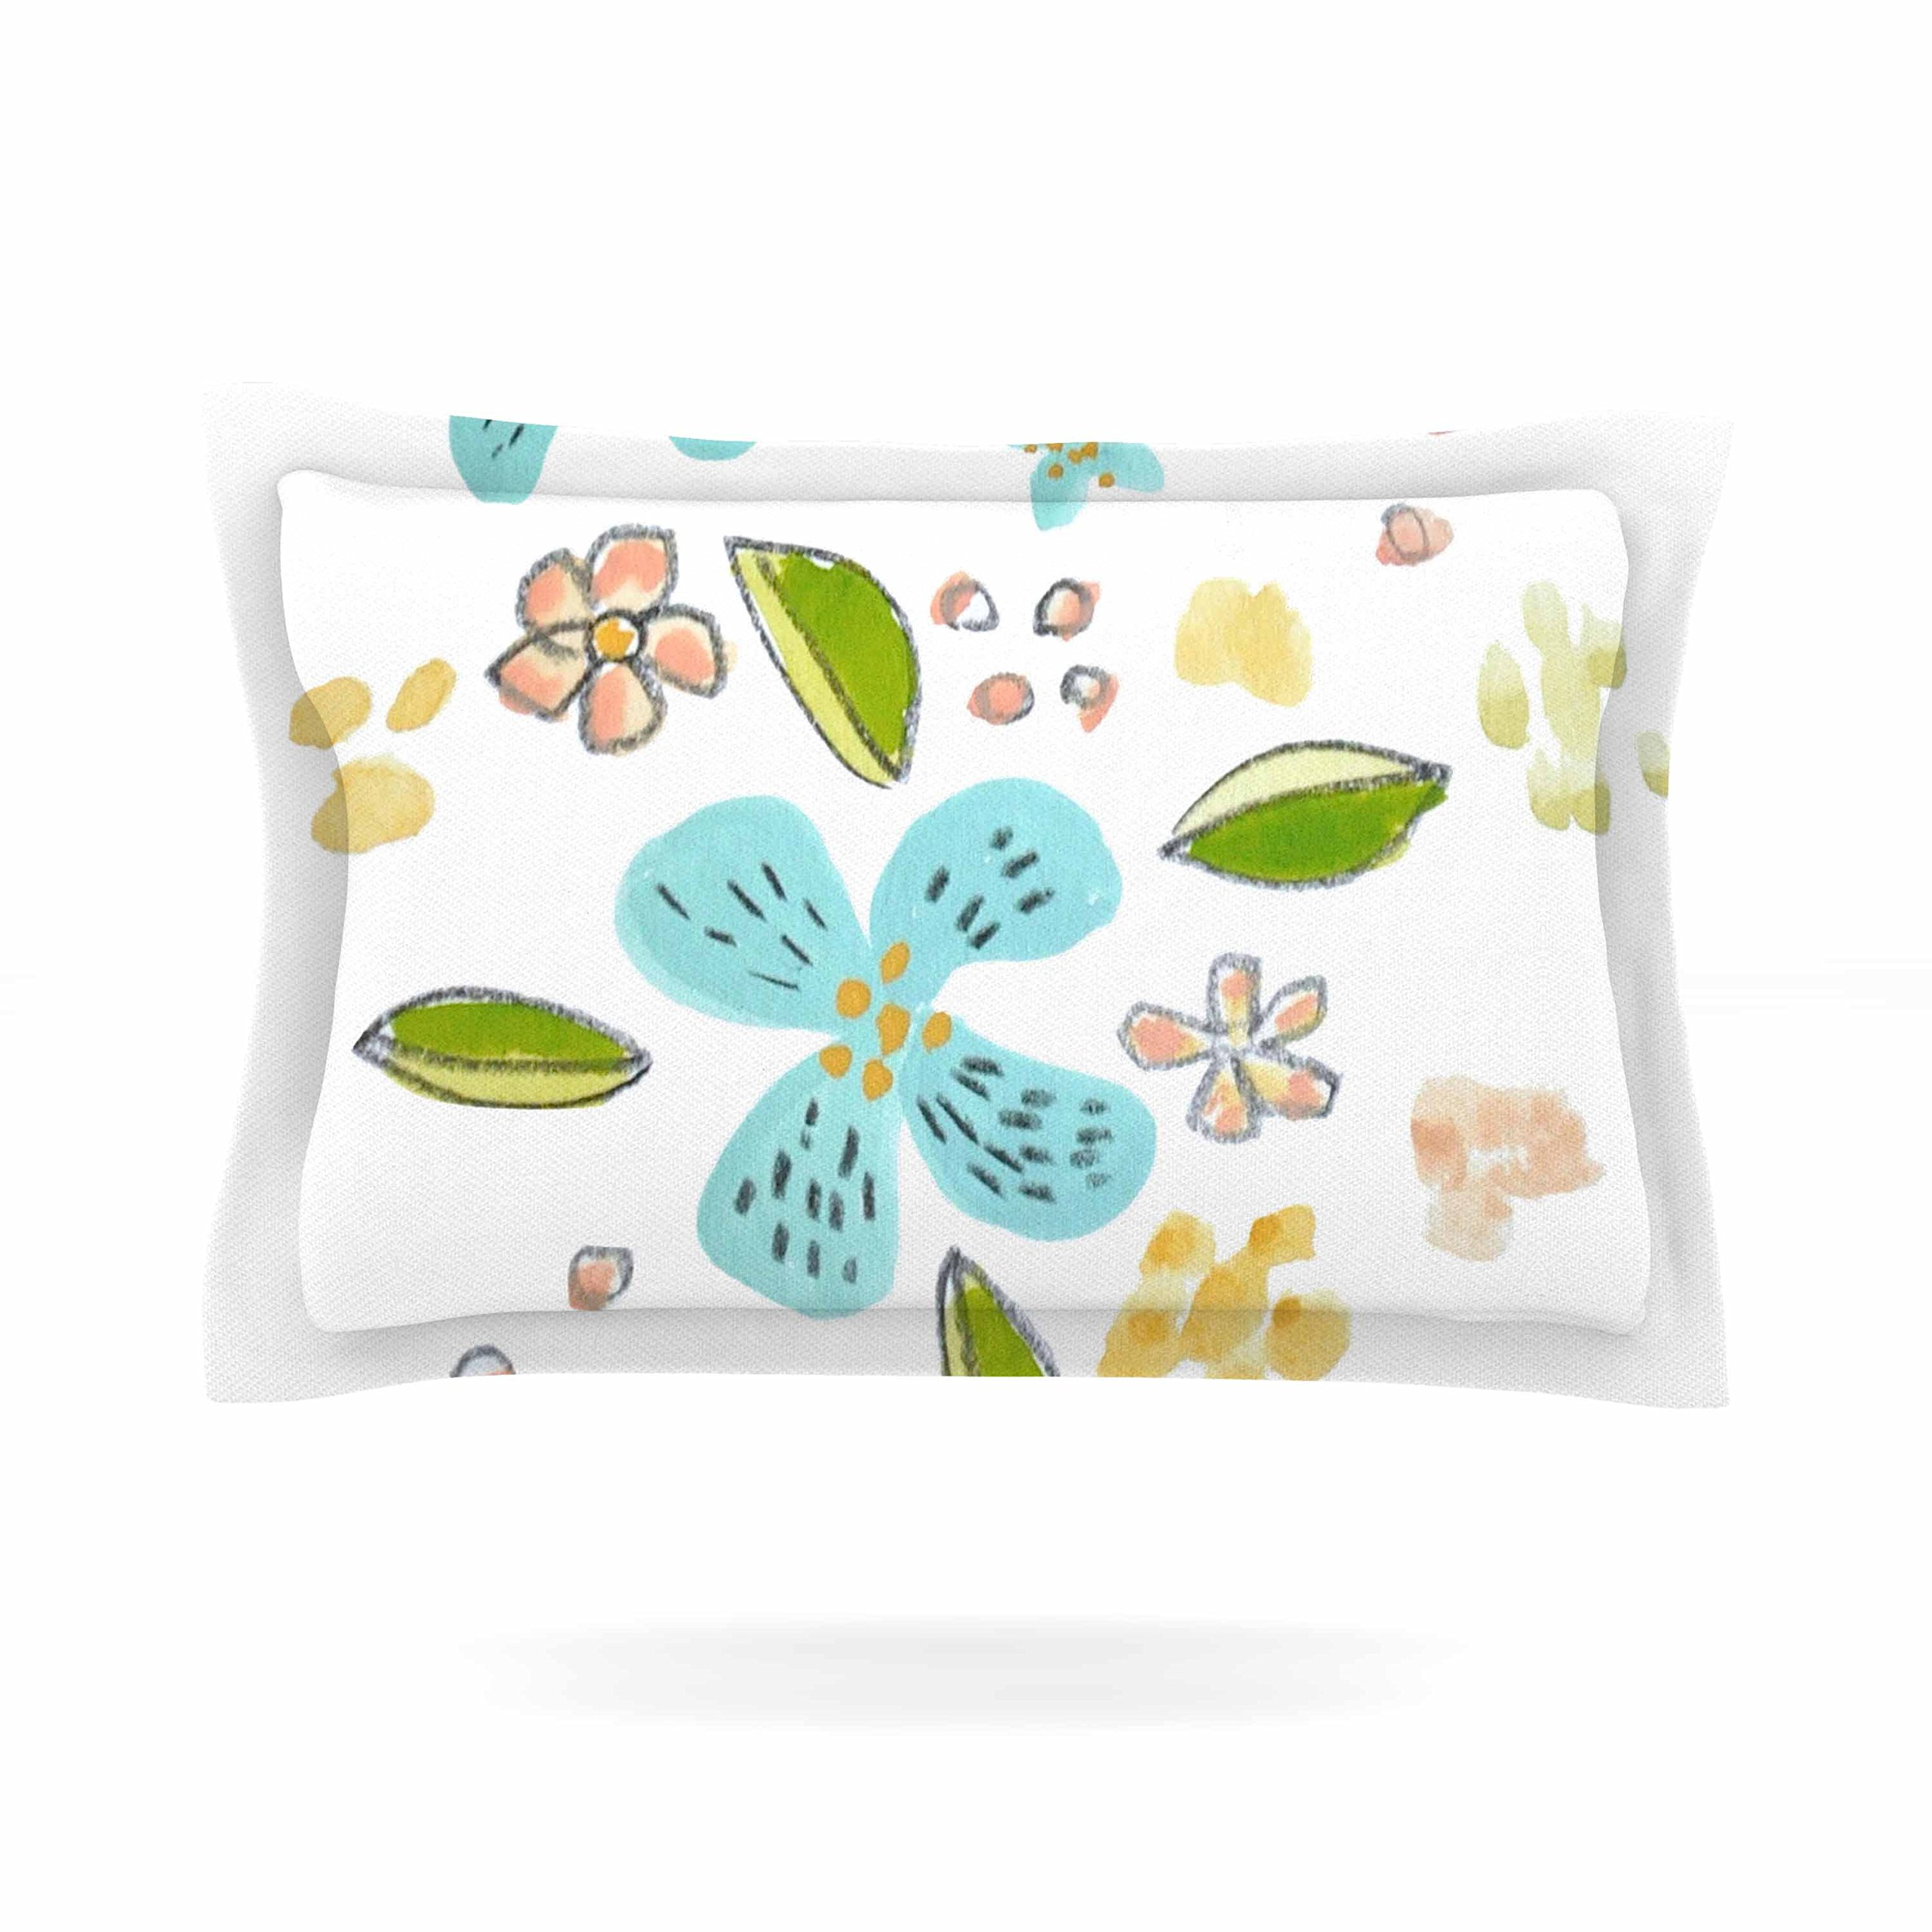 KESS InHouse Jennifer Rizzo ''Happy Flower Dance'' Blue Green Floral Pillow Sham, 40'' x 20''